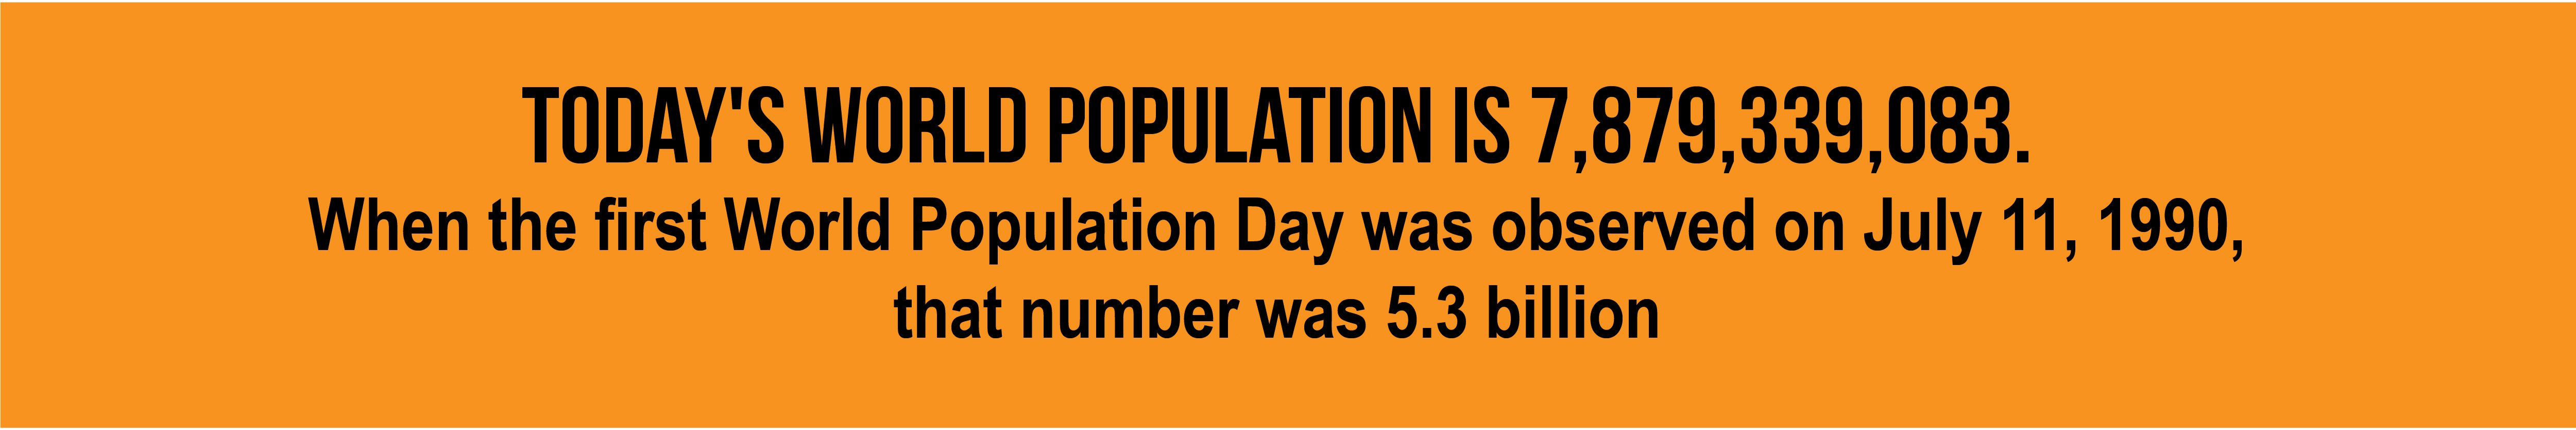 Today's world population is 7,879,339,083.